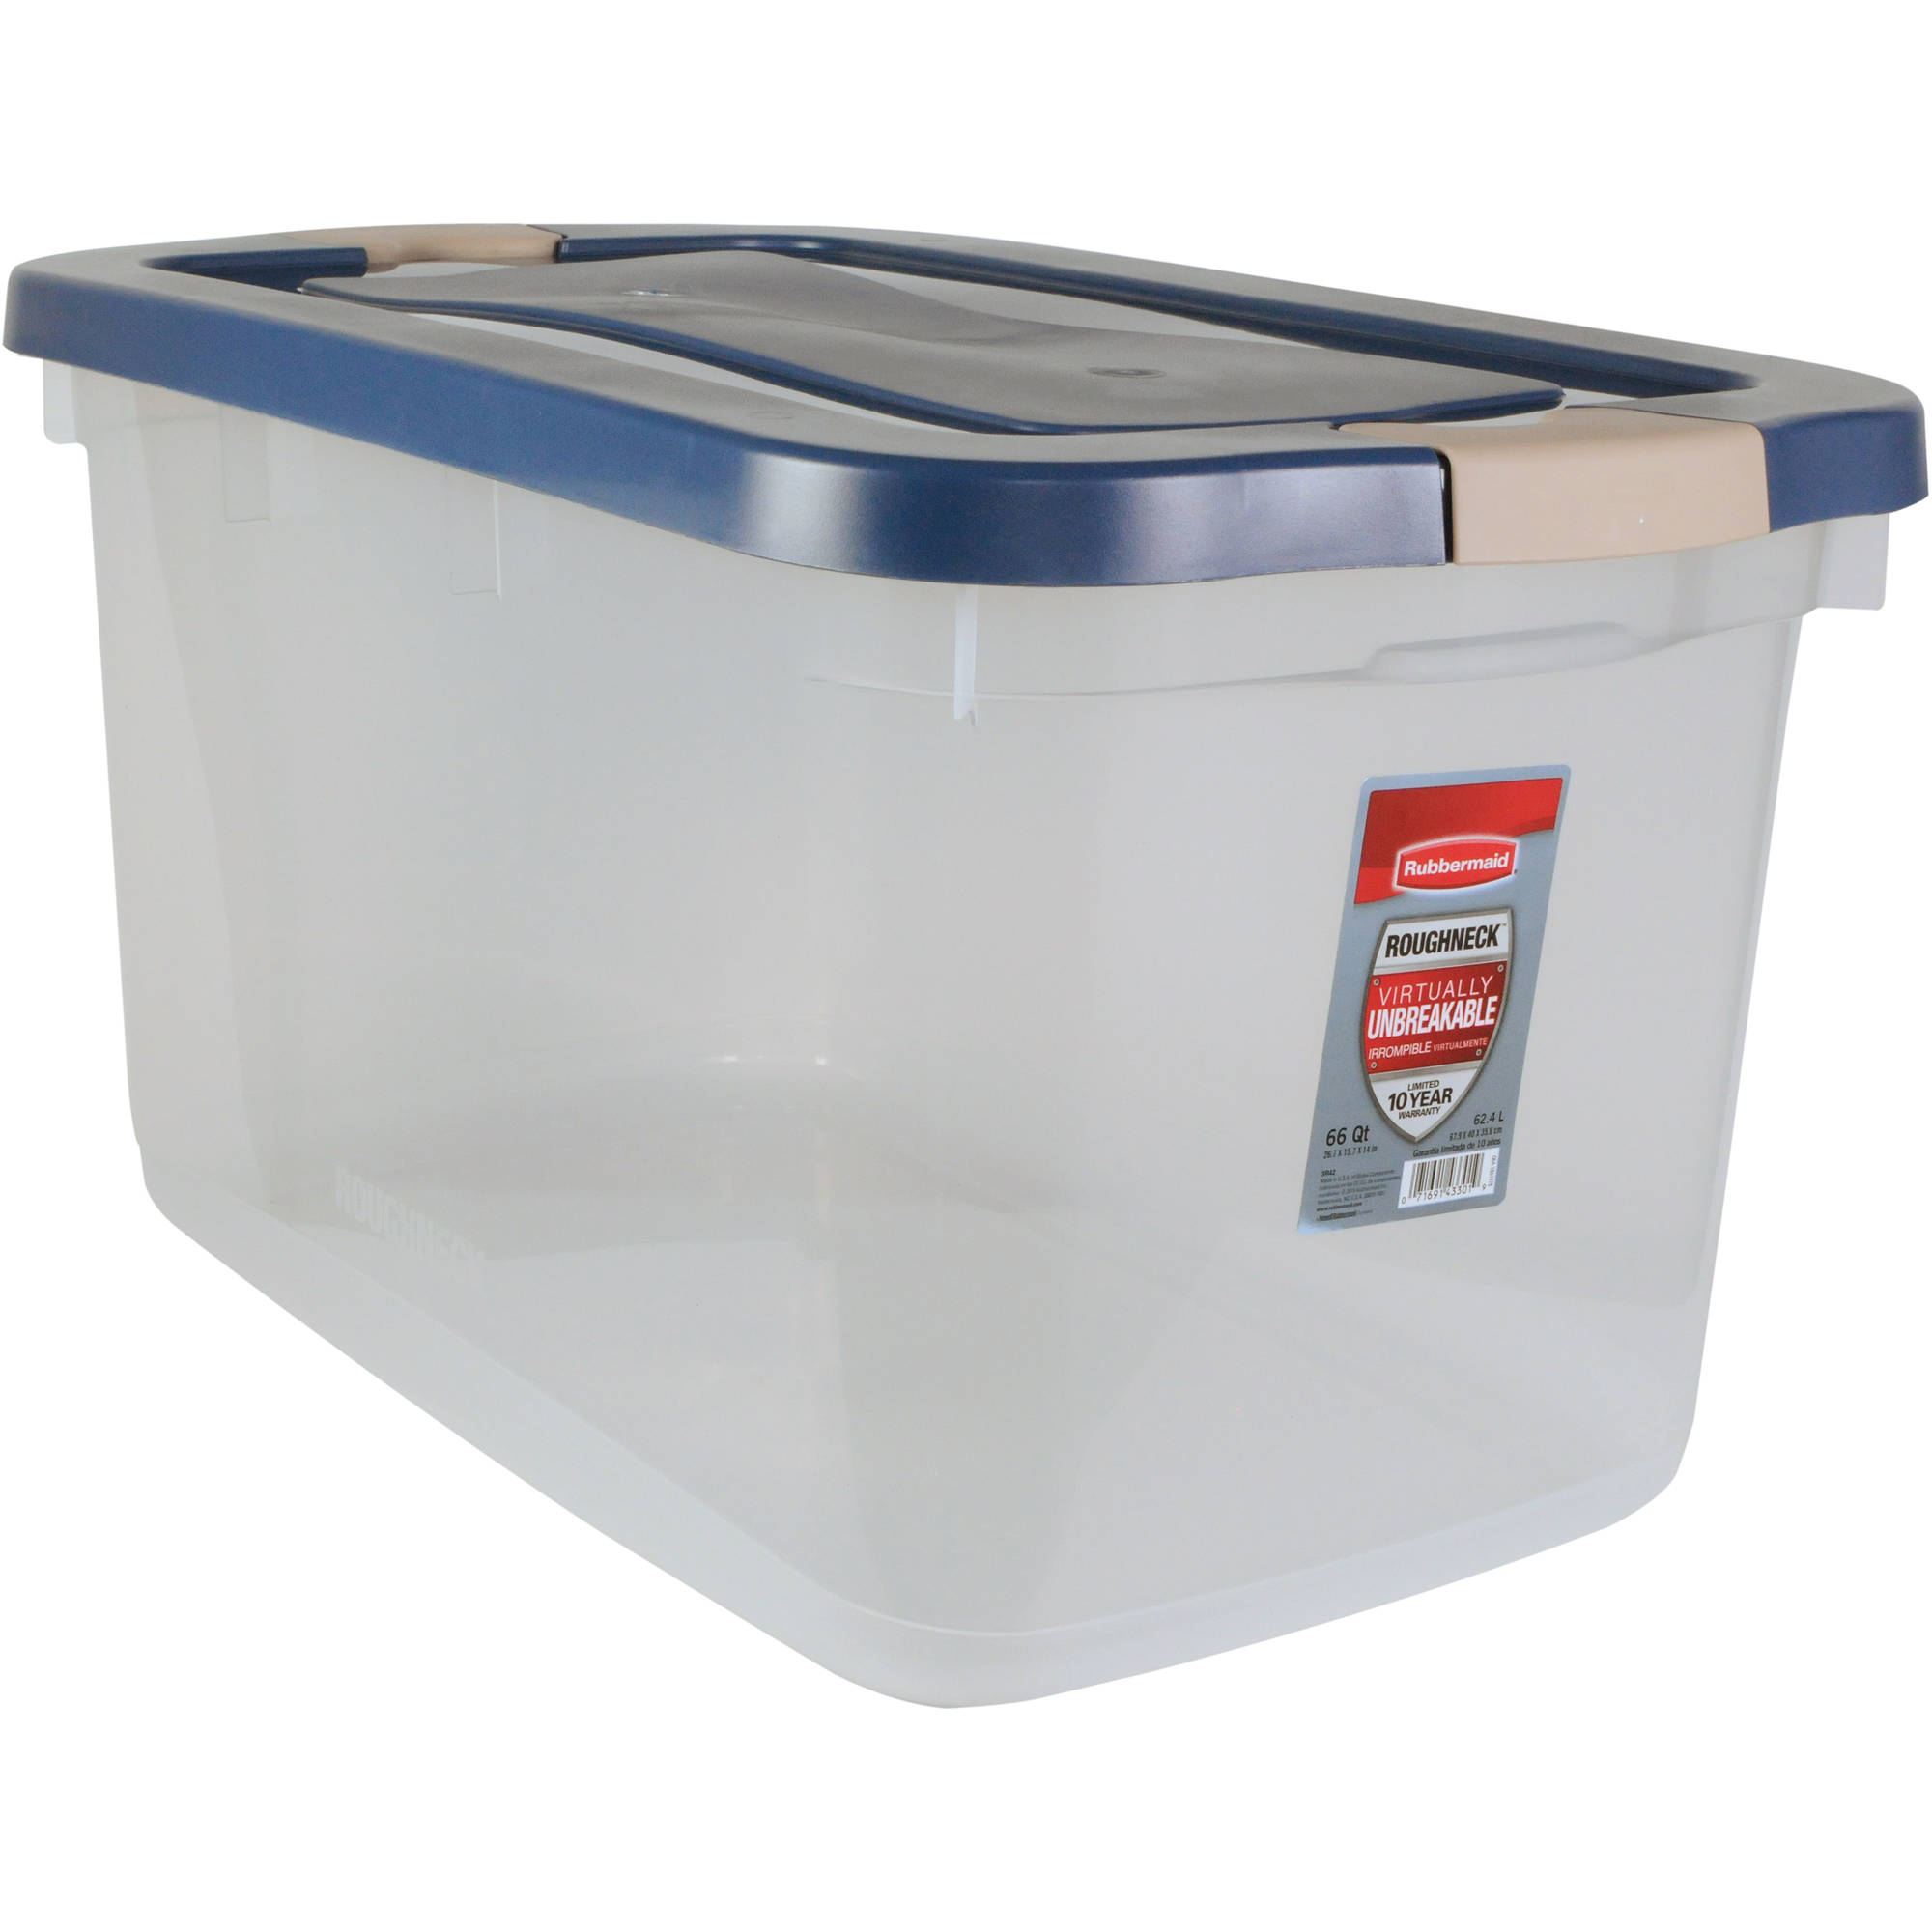 Best Kitchen Gallery: Rubbermaid Roughneck 66 Qt 16 5 Gal Clear Storage Tote Bin Clear of Plastic Storage Containers By Size on rachelxblog.com